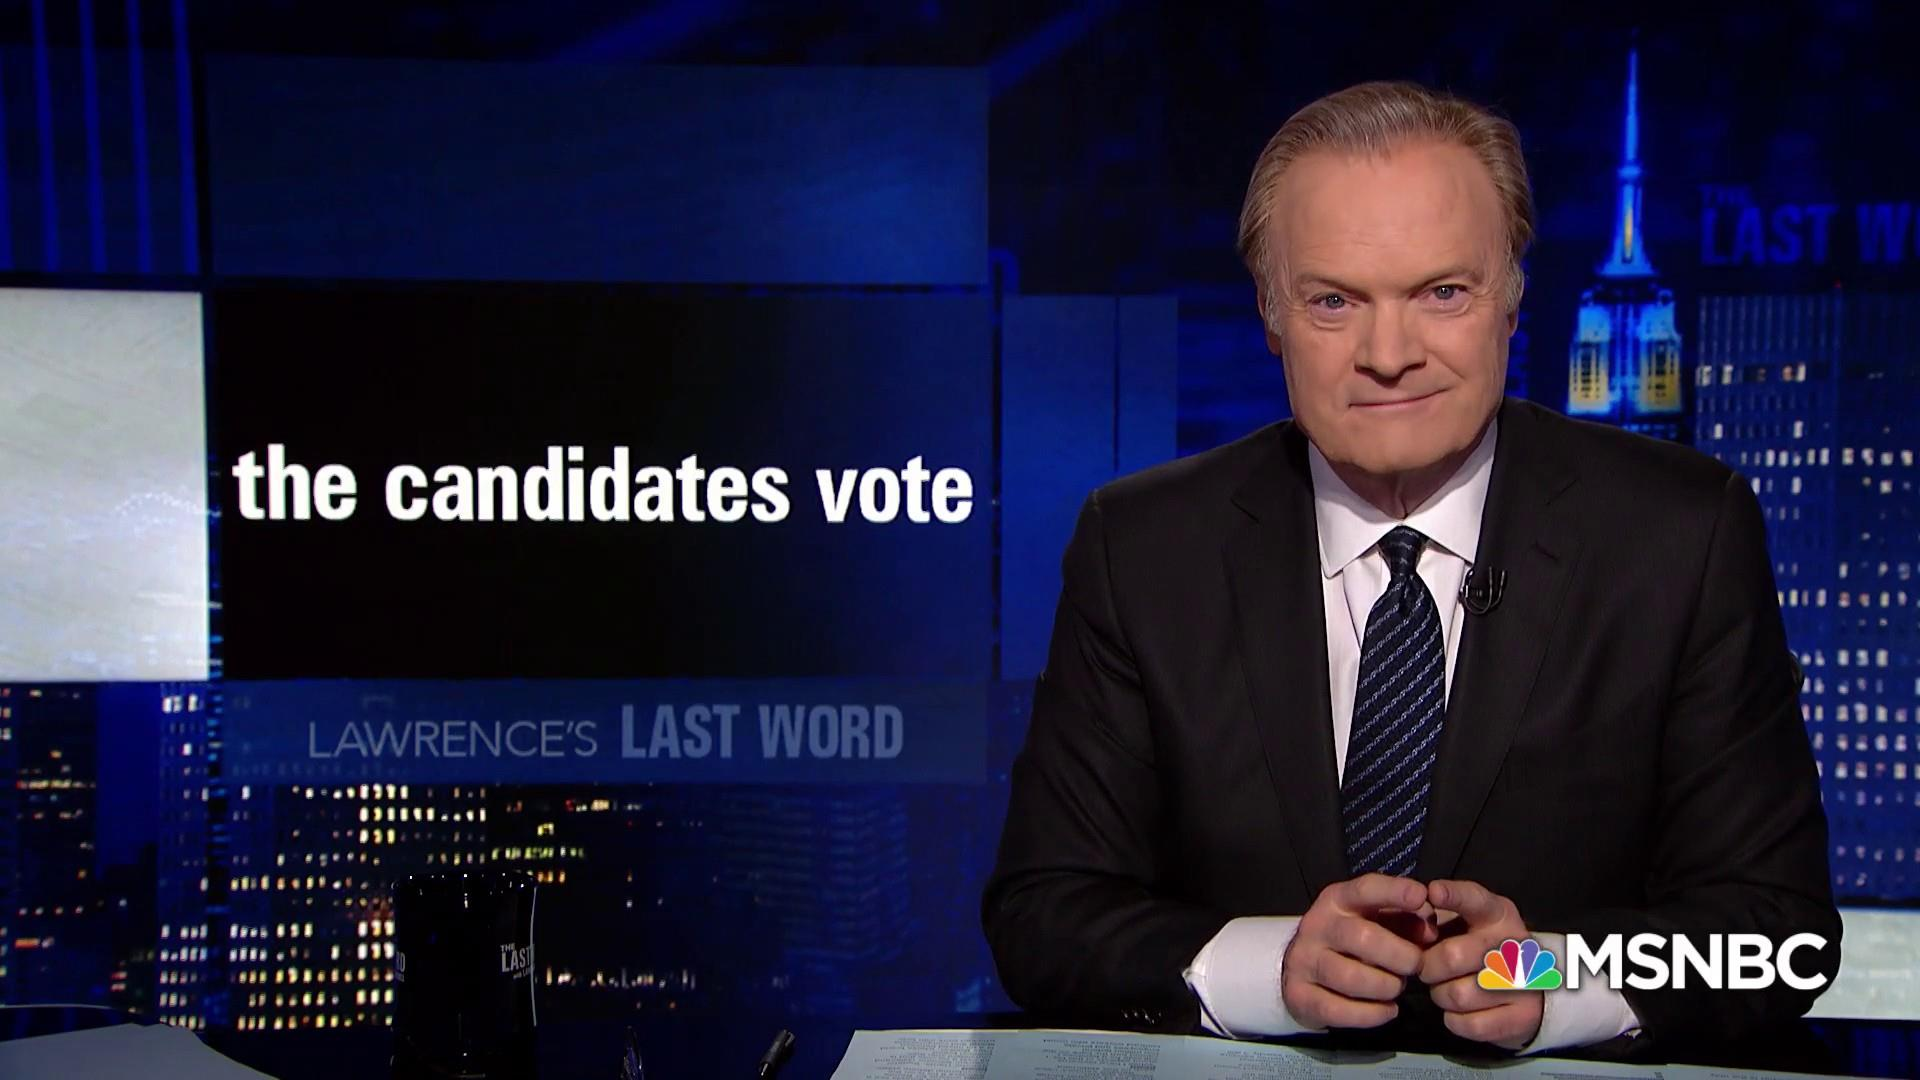 Lawrence's Last Word: the candidates vote